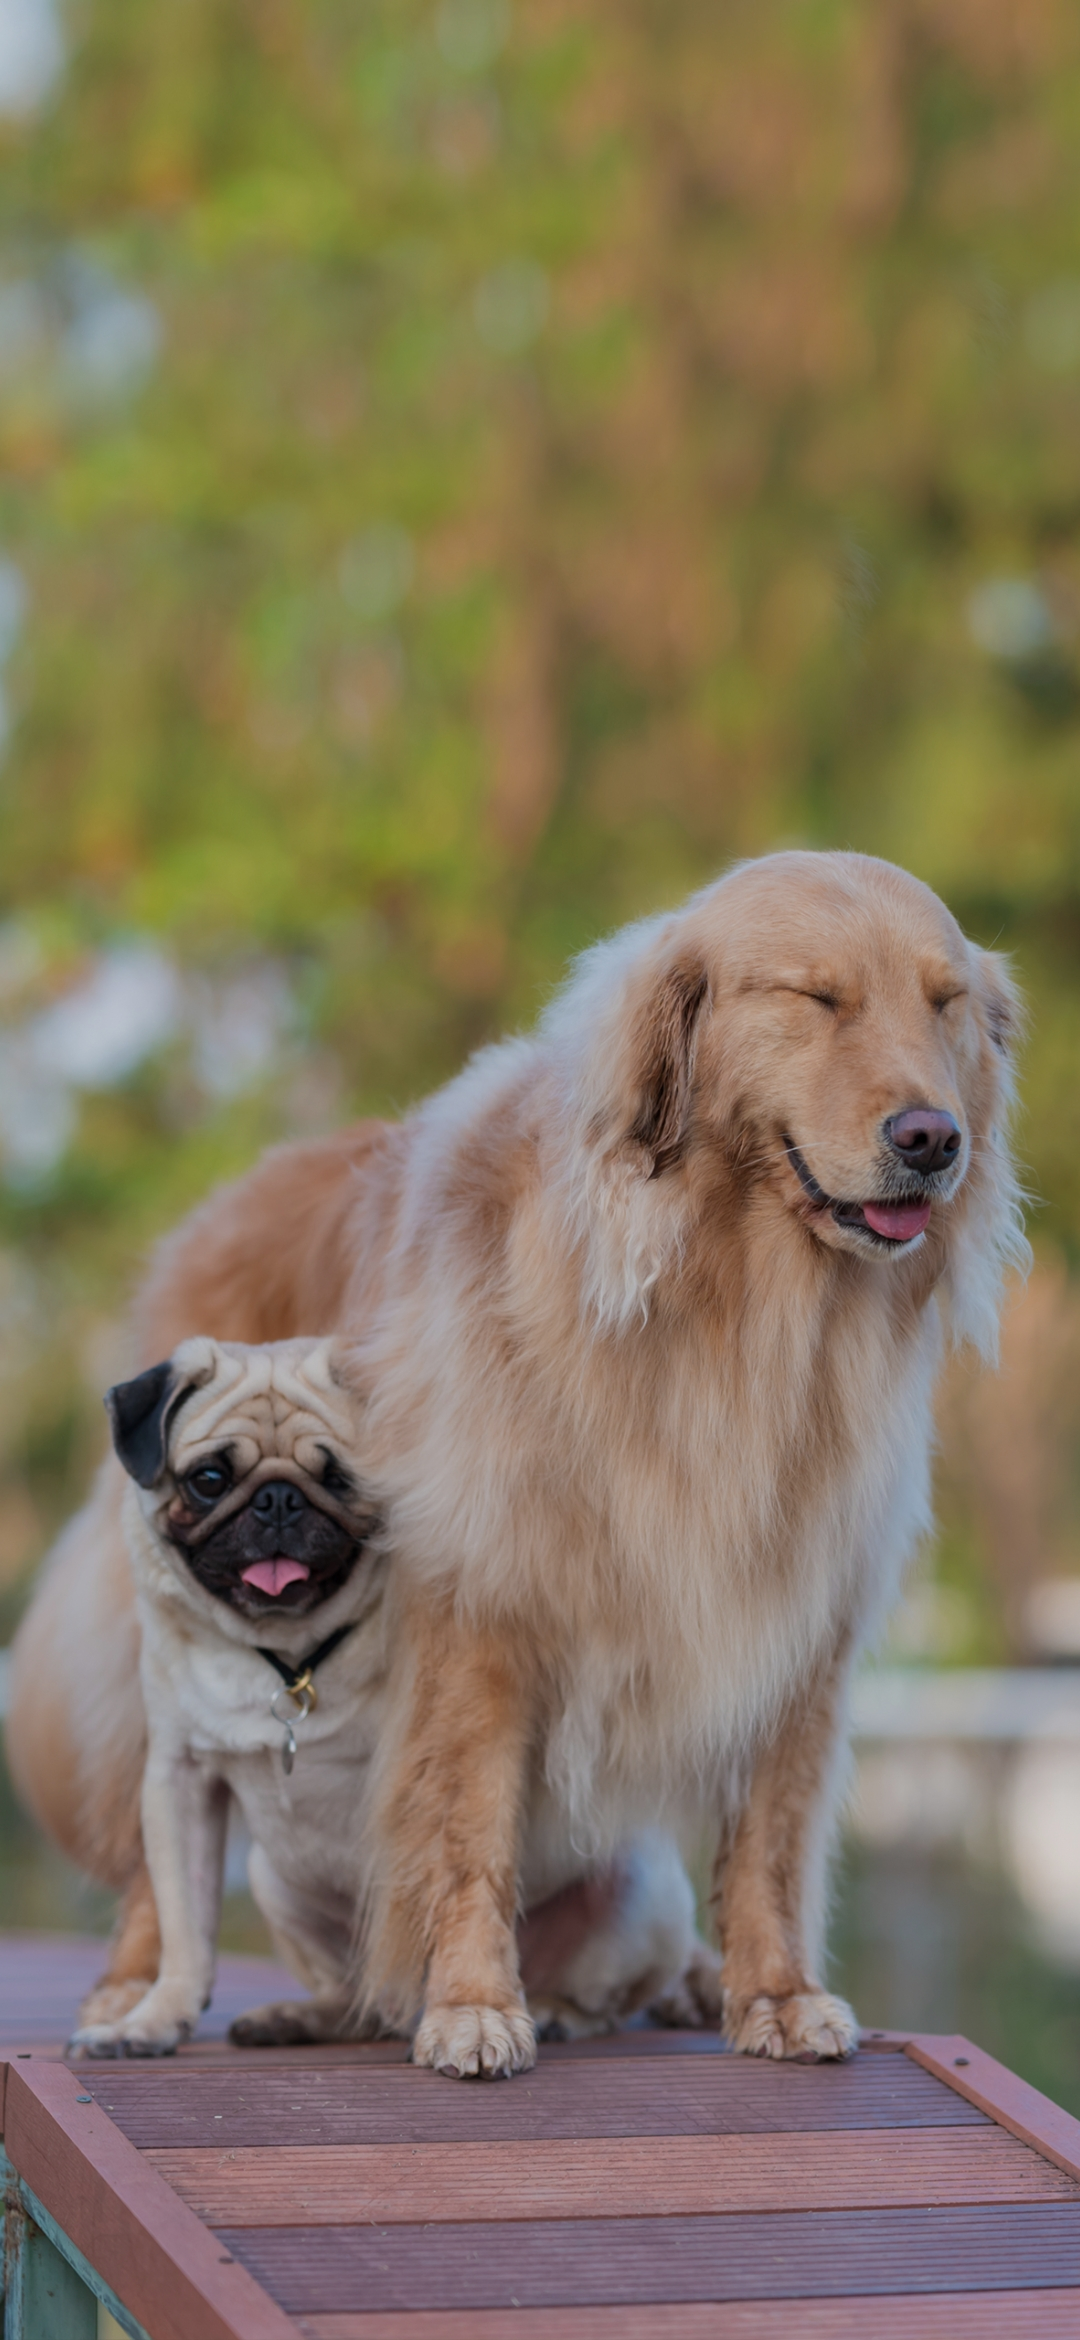 Two pet dogs